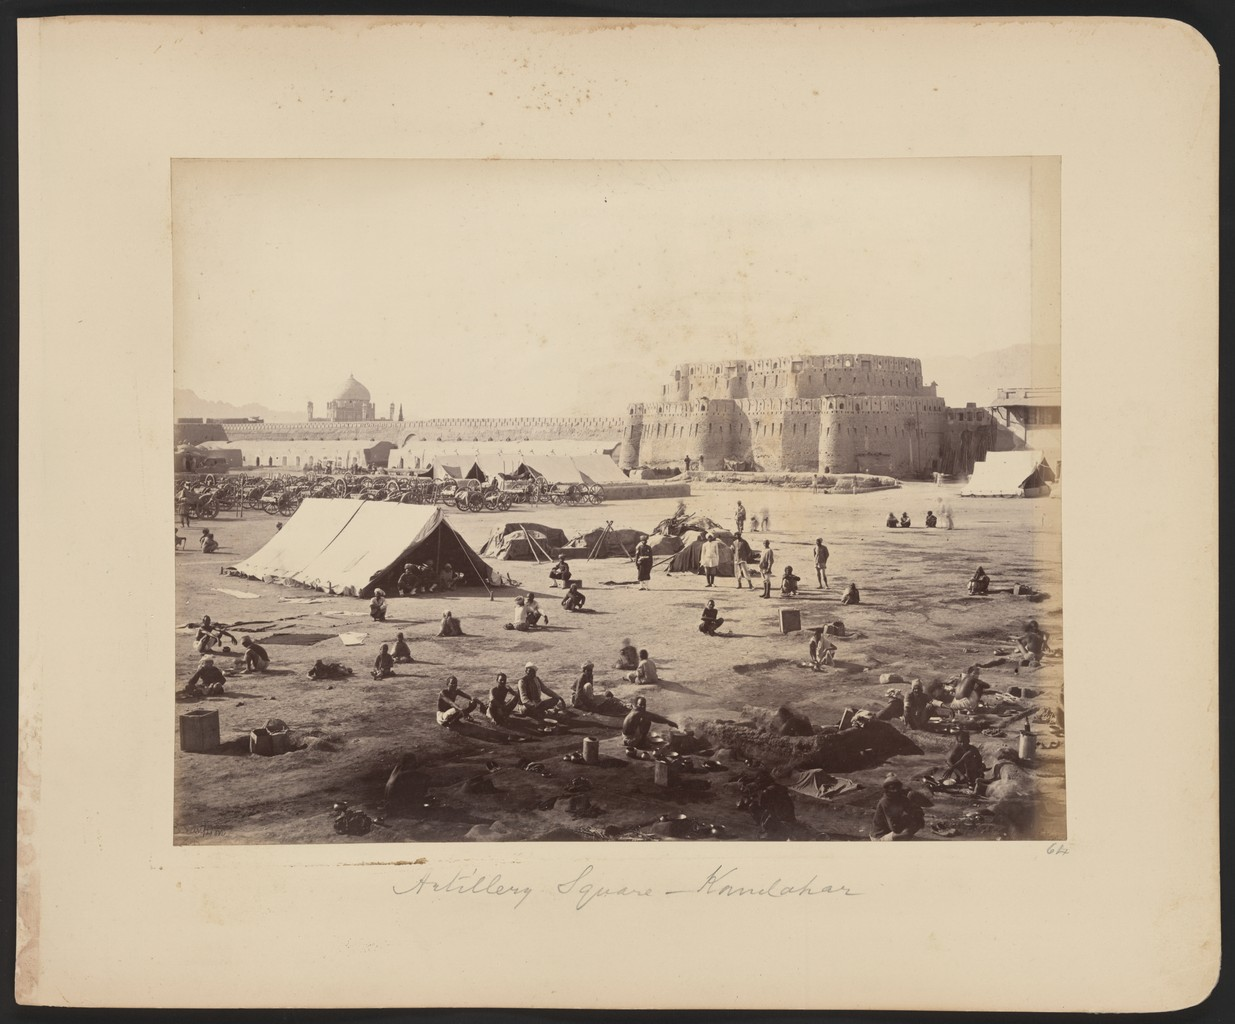 An encampment of British troops in Kandahar during the Second Anglo-Afghan War of 1878-1880.